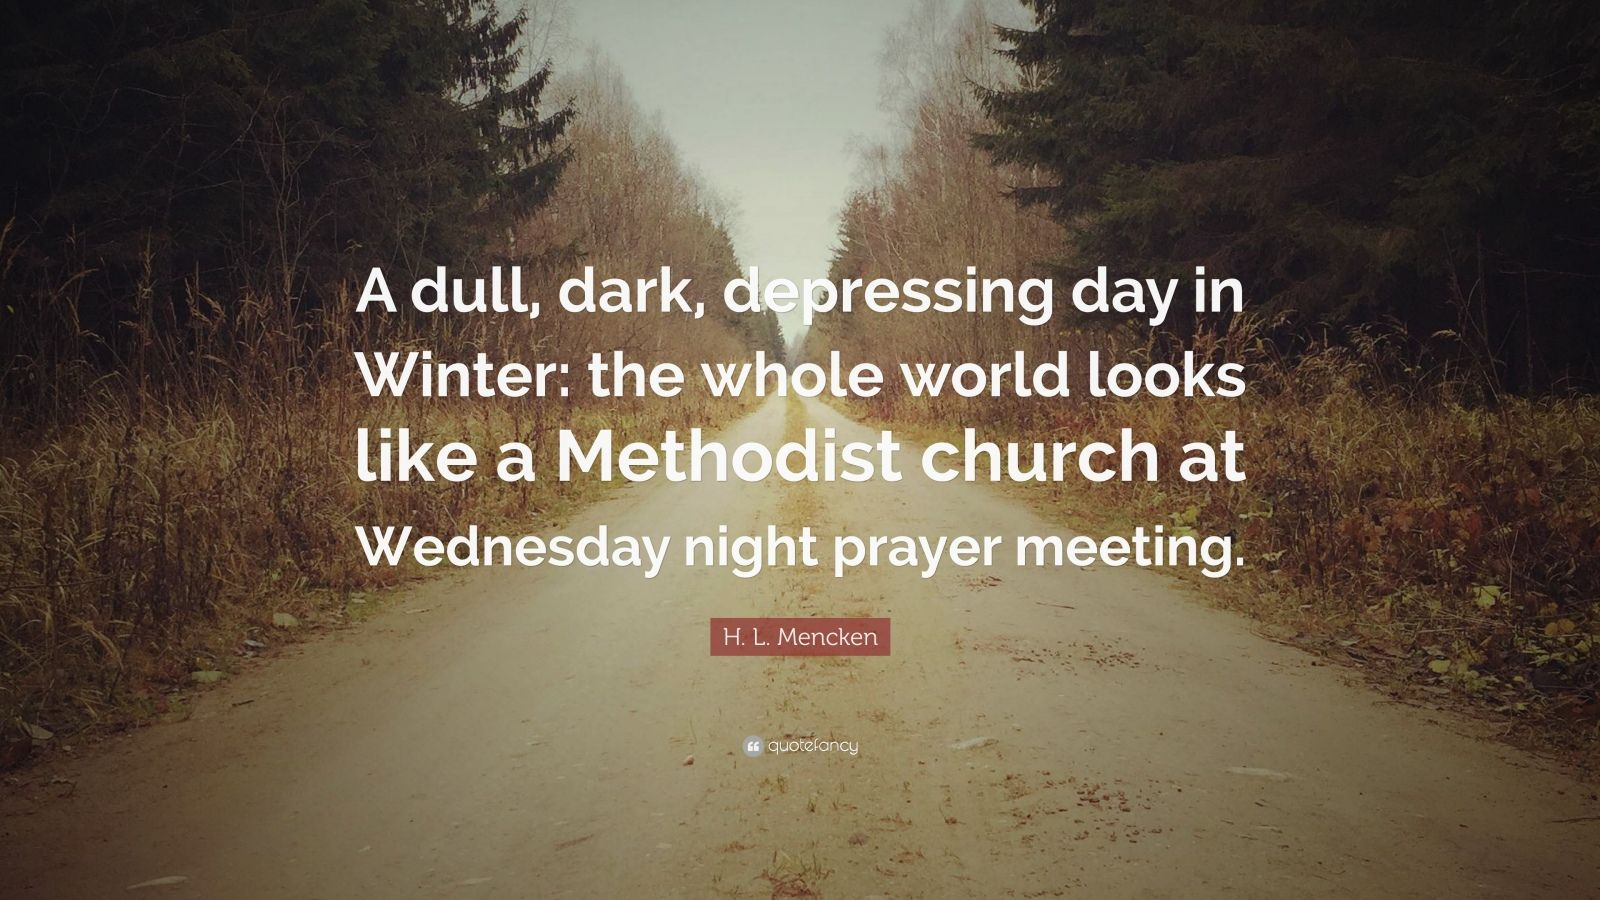 Meeting Wednesday Night Prayer Quotes Bing 20 Dark Depression Cutting Quotes Pictures And Ideas On Meta Networks